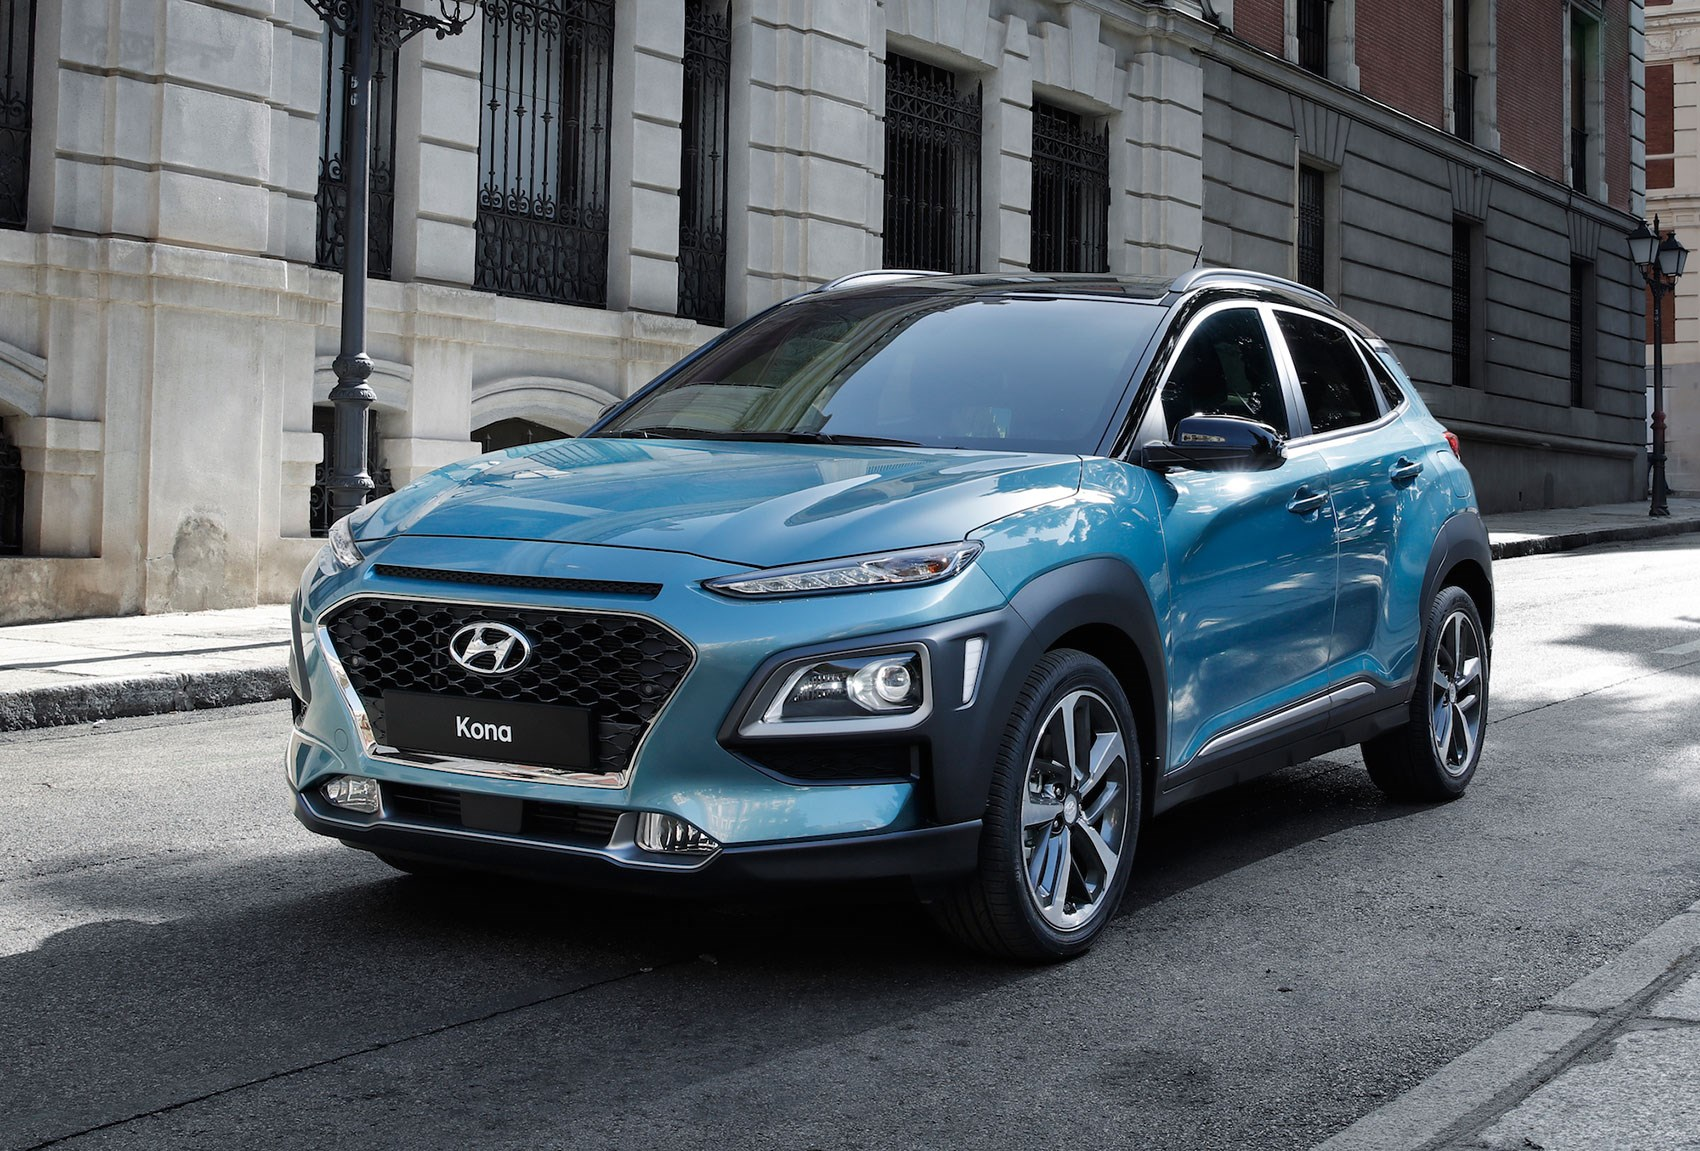 The New Hyundai Kona Revealed